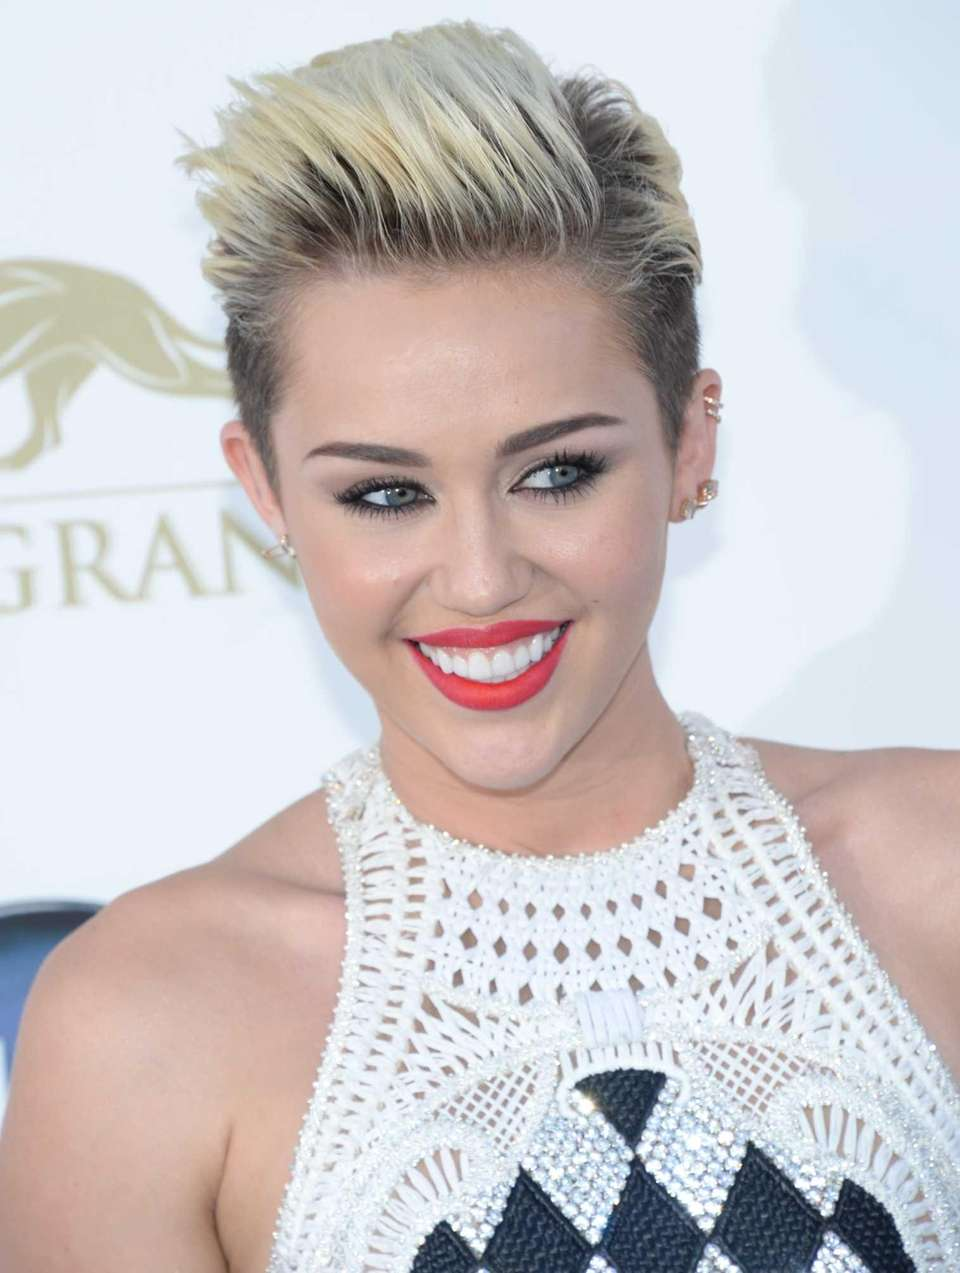 Singer Miley Cyrus, born on Nov. 23, 1992.